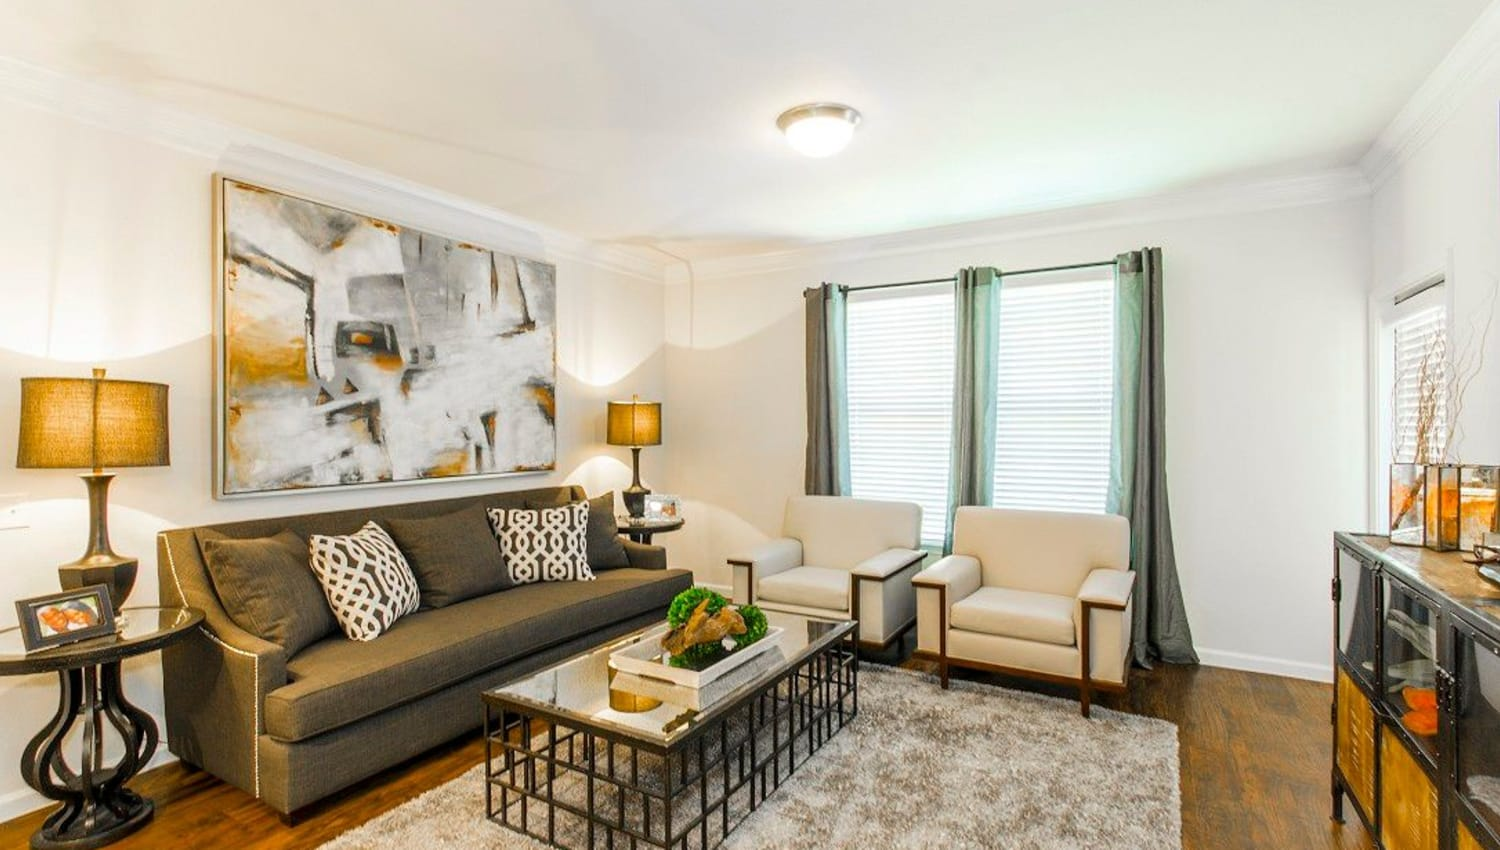 Classic decor in a model home's living area at Olympus Woodbridge in Sachse, Texas